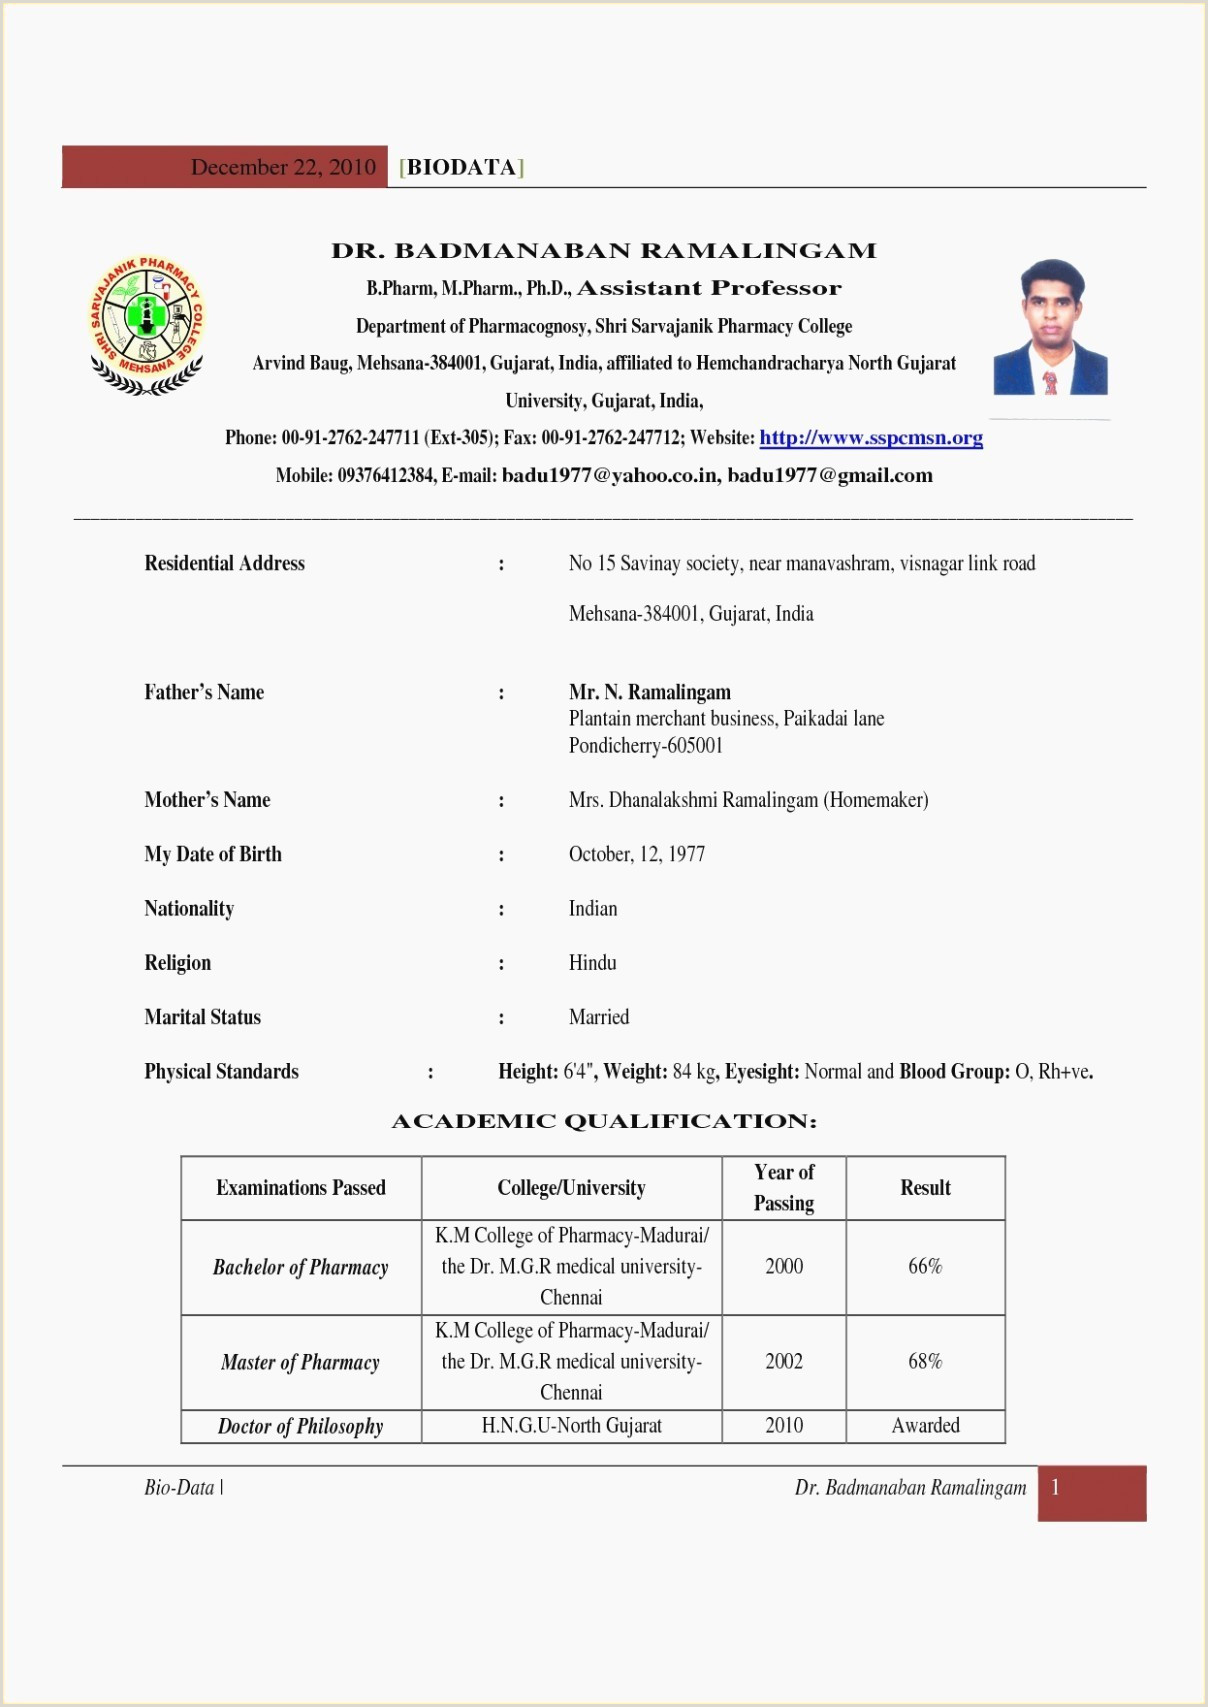 Fresher Resume format Doc India 55 Simple Resume format for Freshers Doc